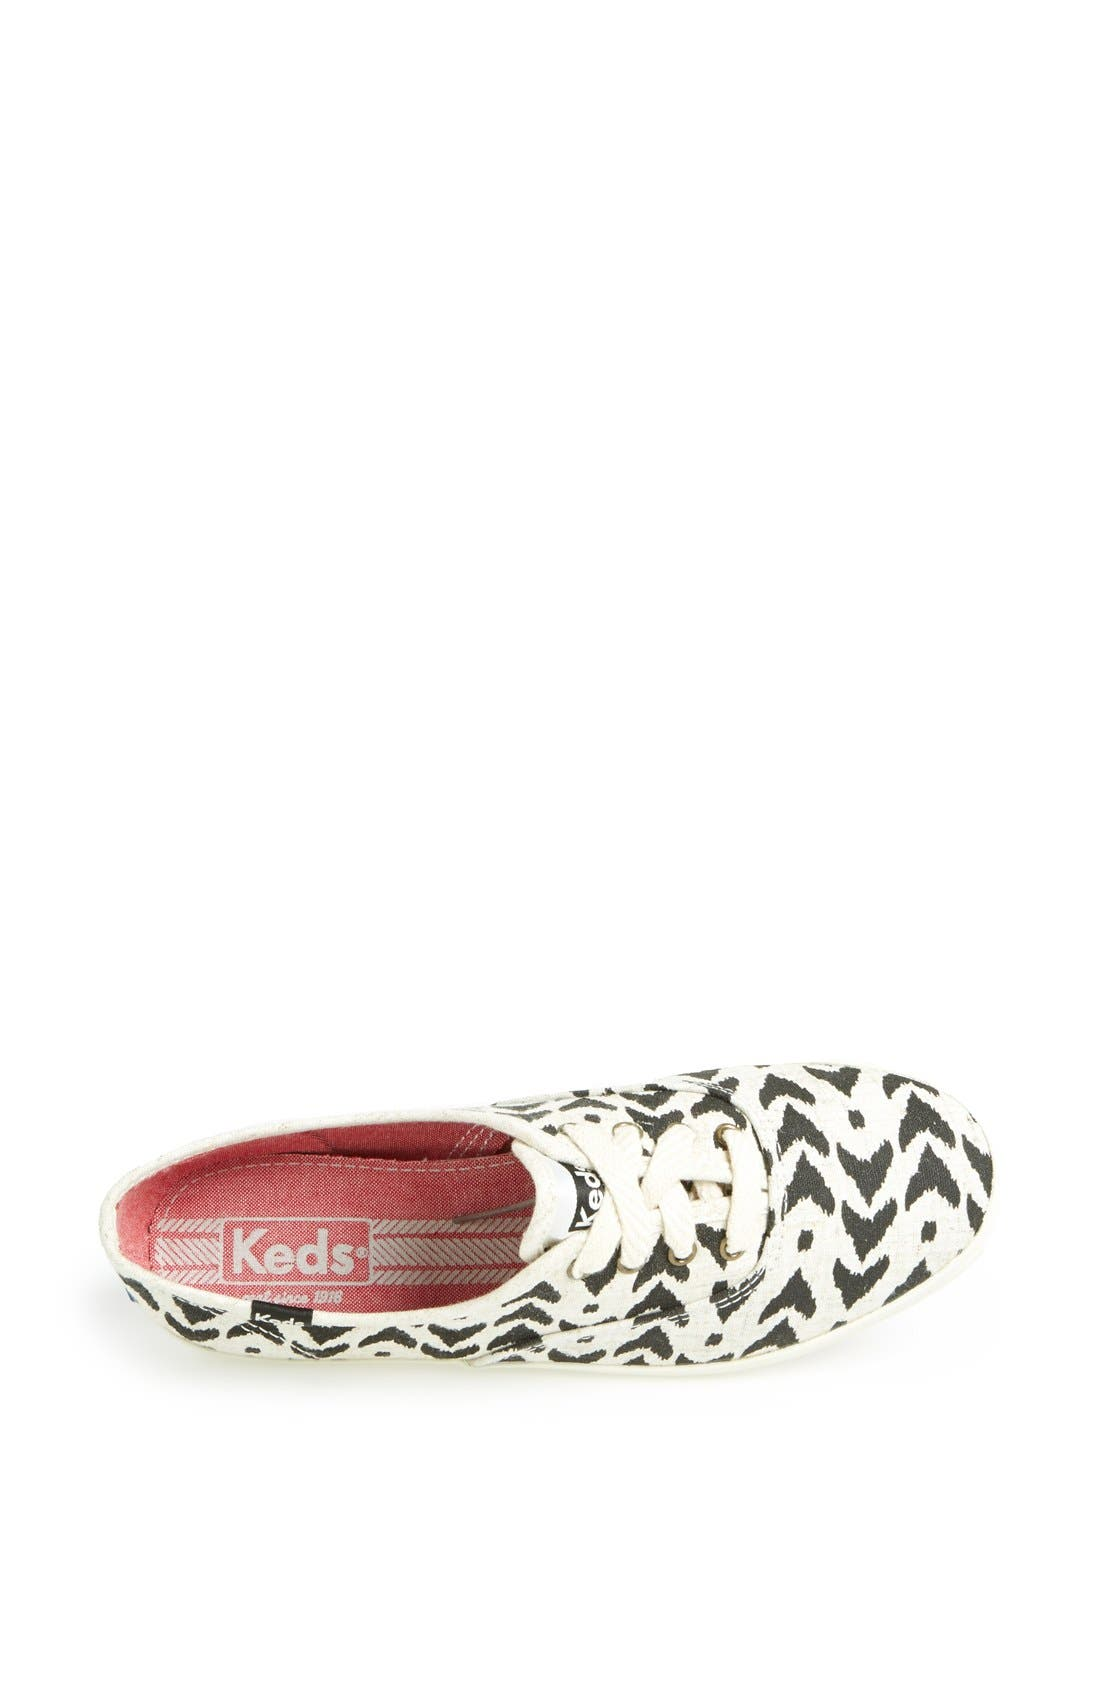 Alternate Image 3  - Keds® 'Champion - Ikat' Sneaker (Women)